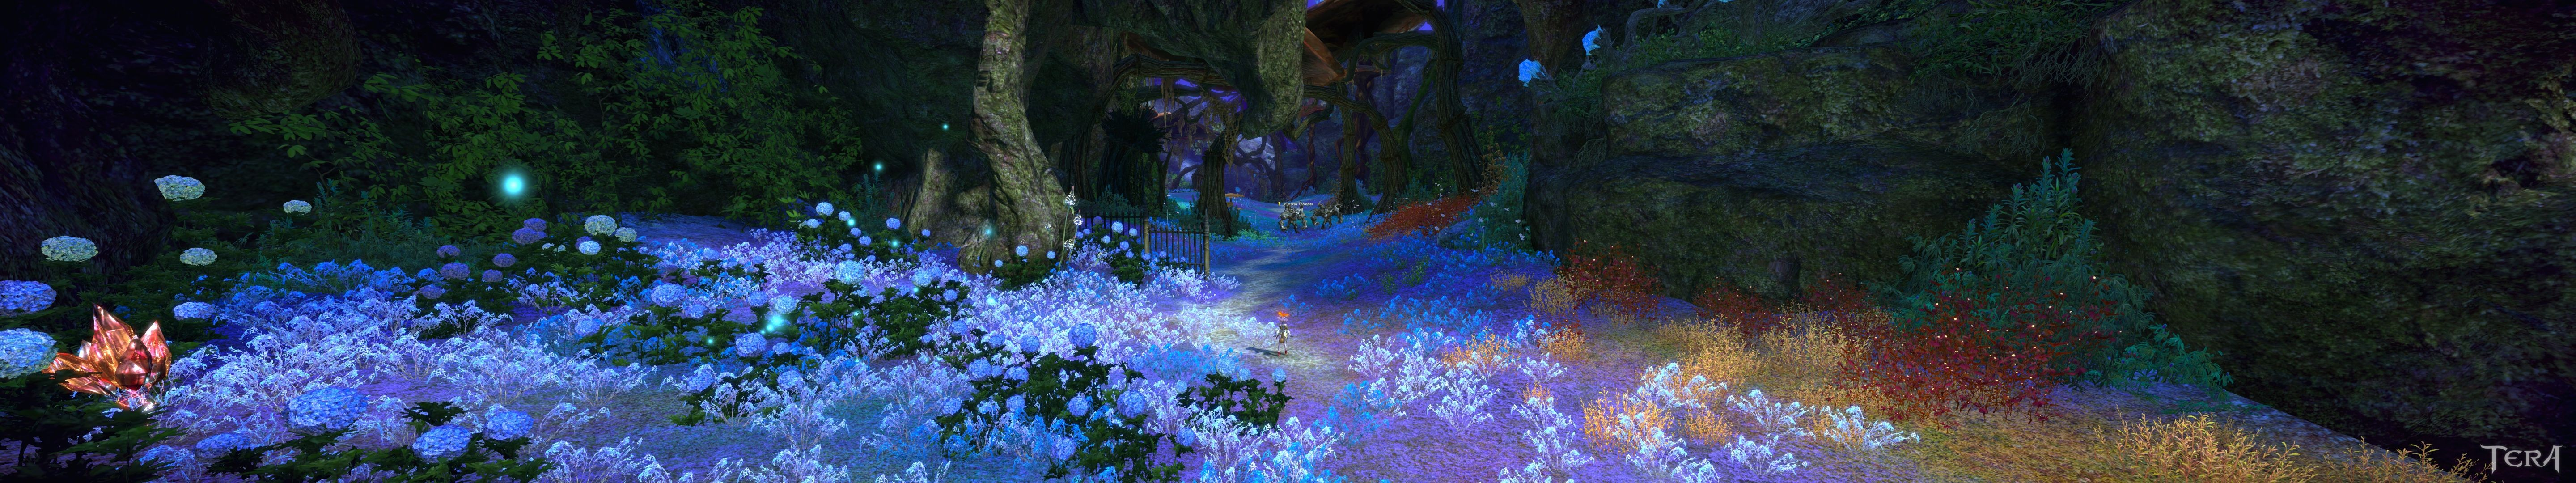 TERA - Pretty blue and other flowers. 3 monitors required to view in full screen resolution.